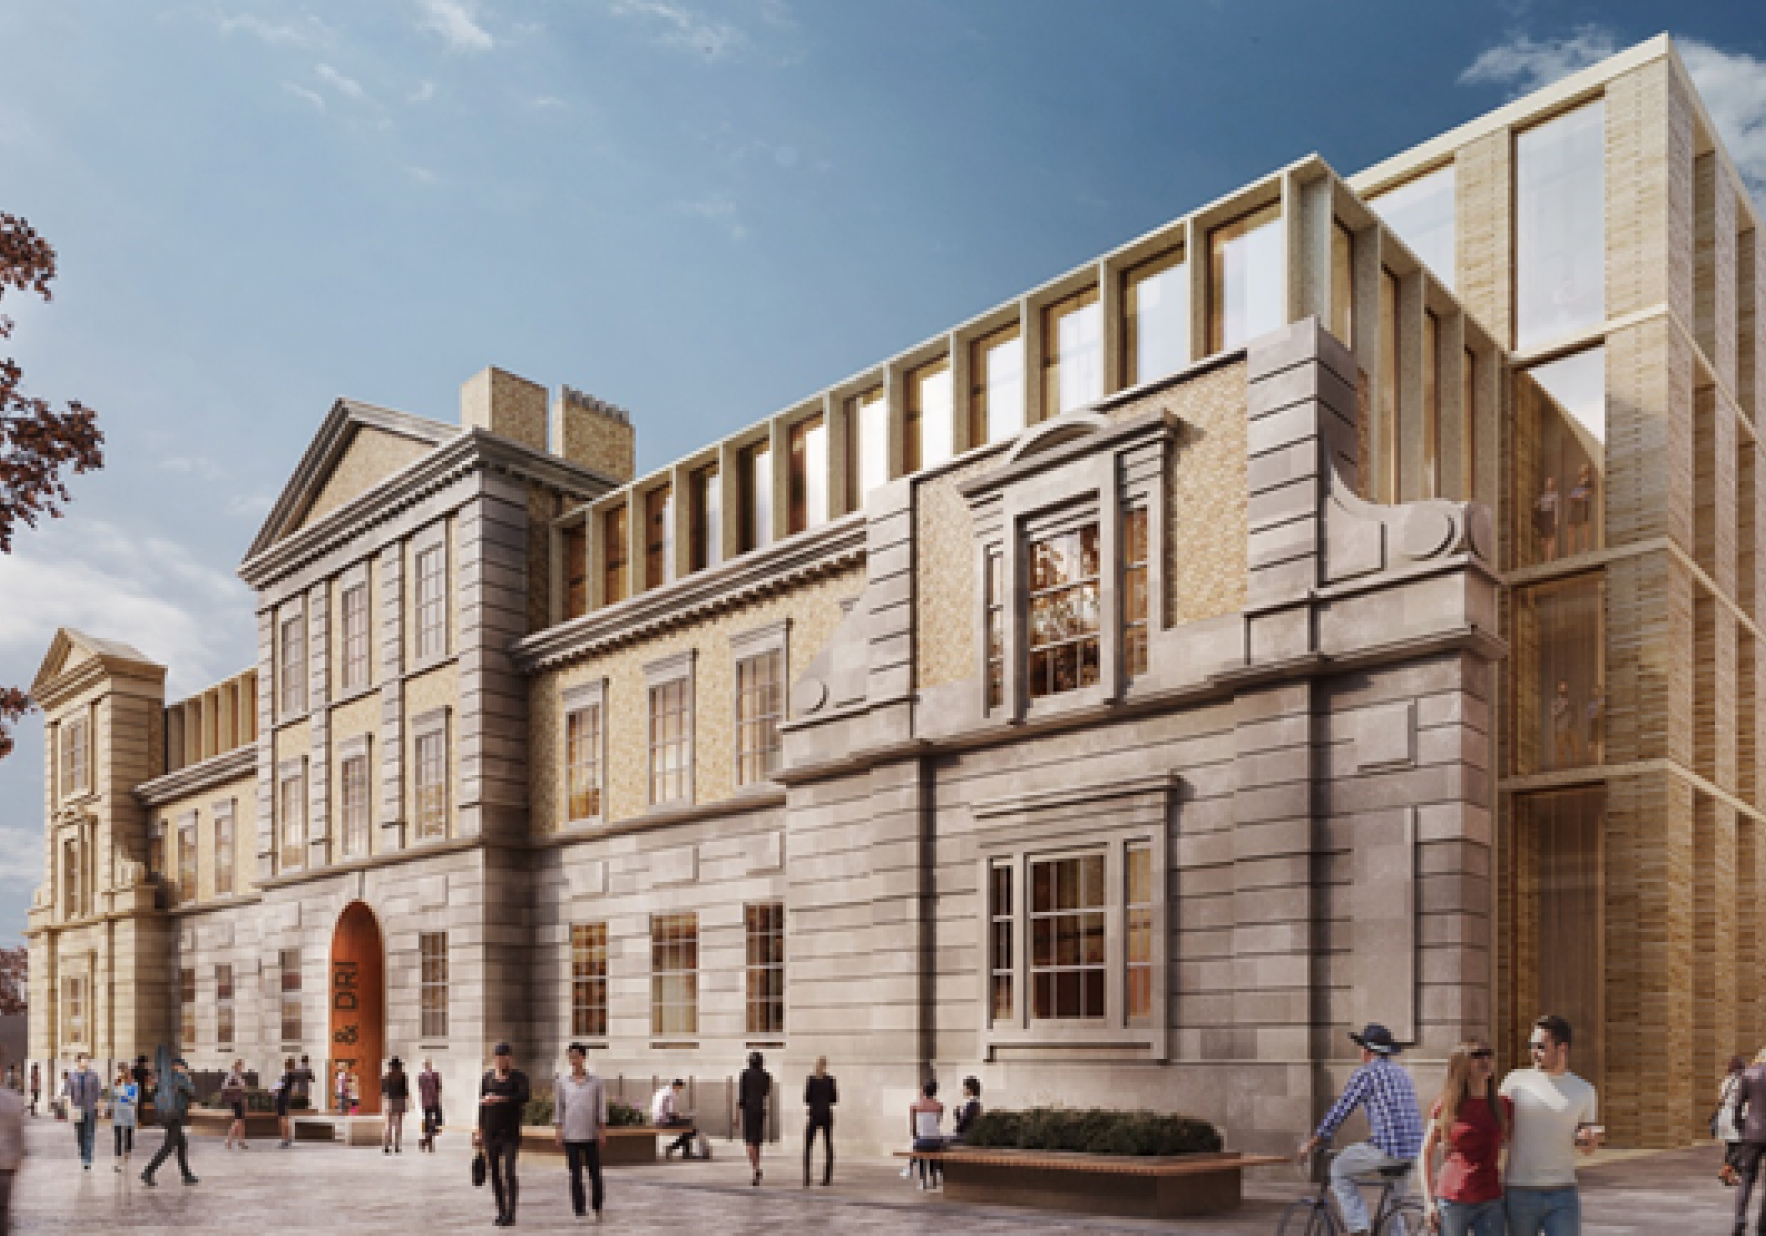 The Wolfson Foundation Artist Impression Of The Neuroscience Building From Grays Inn Road